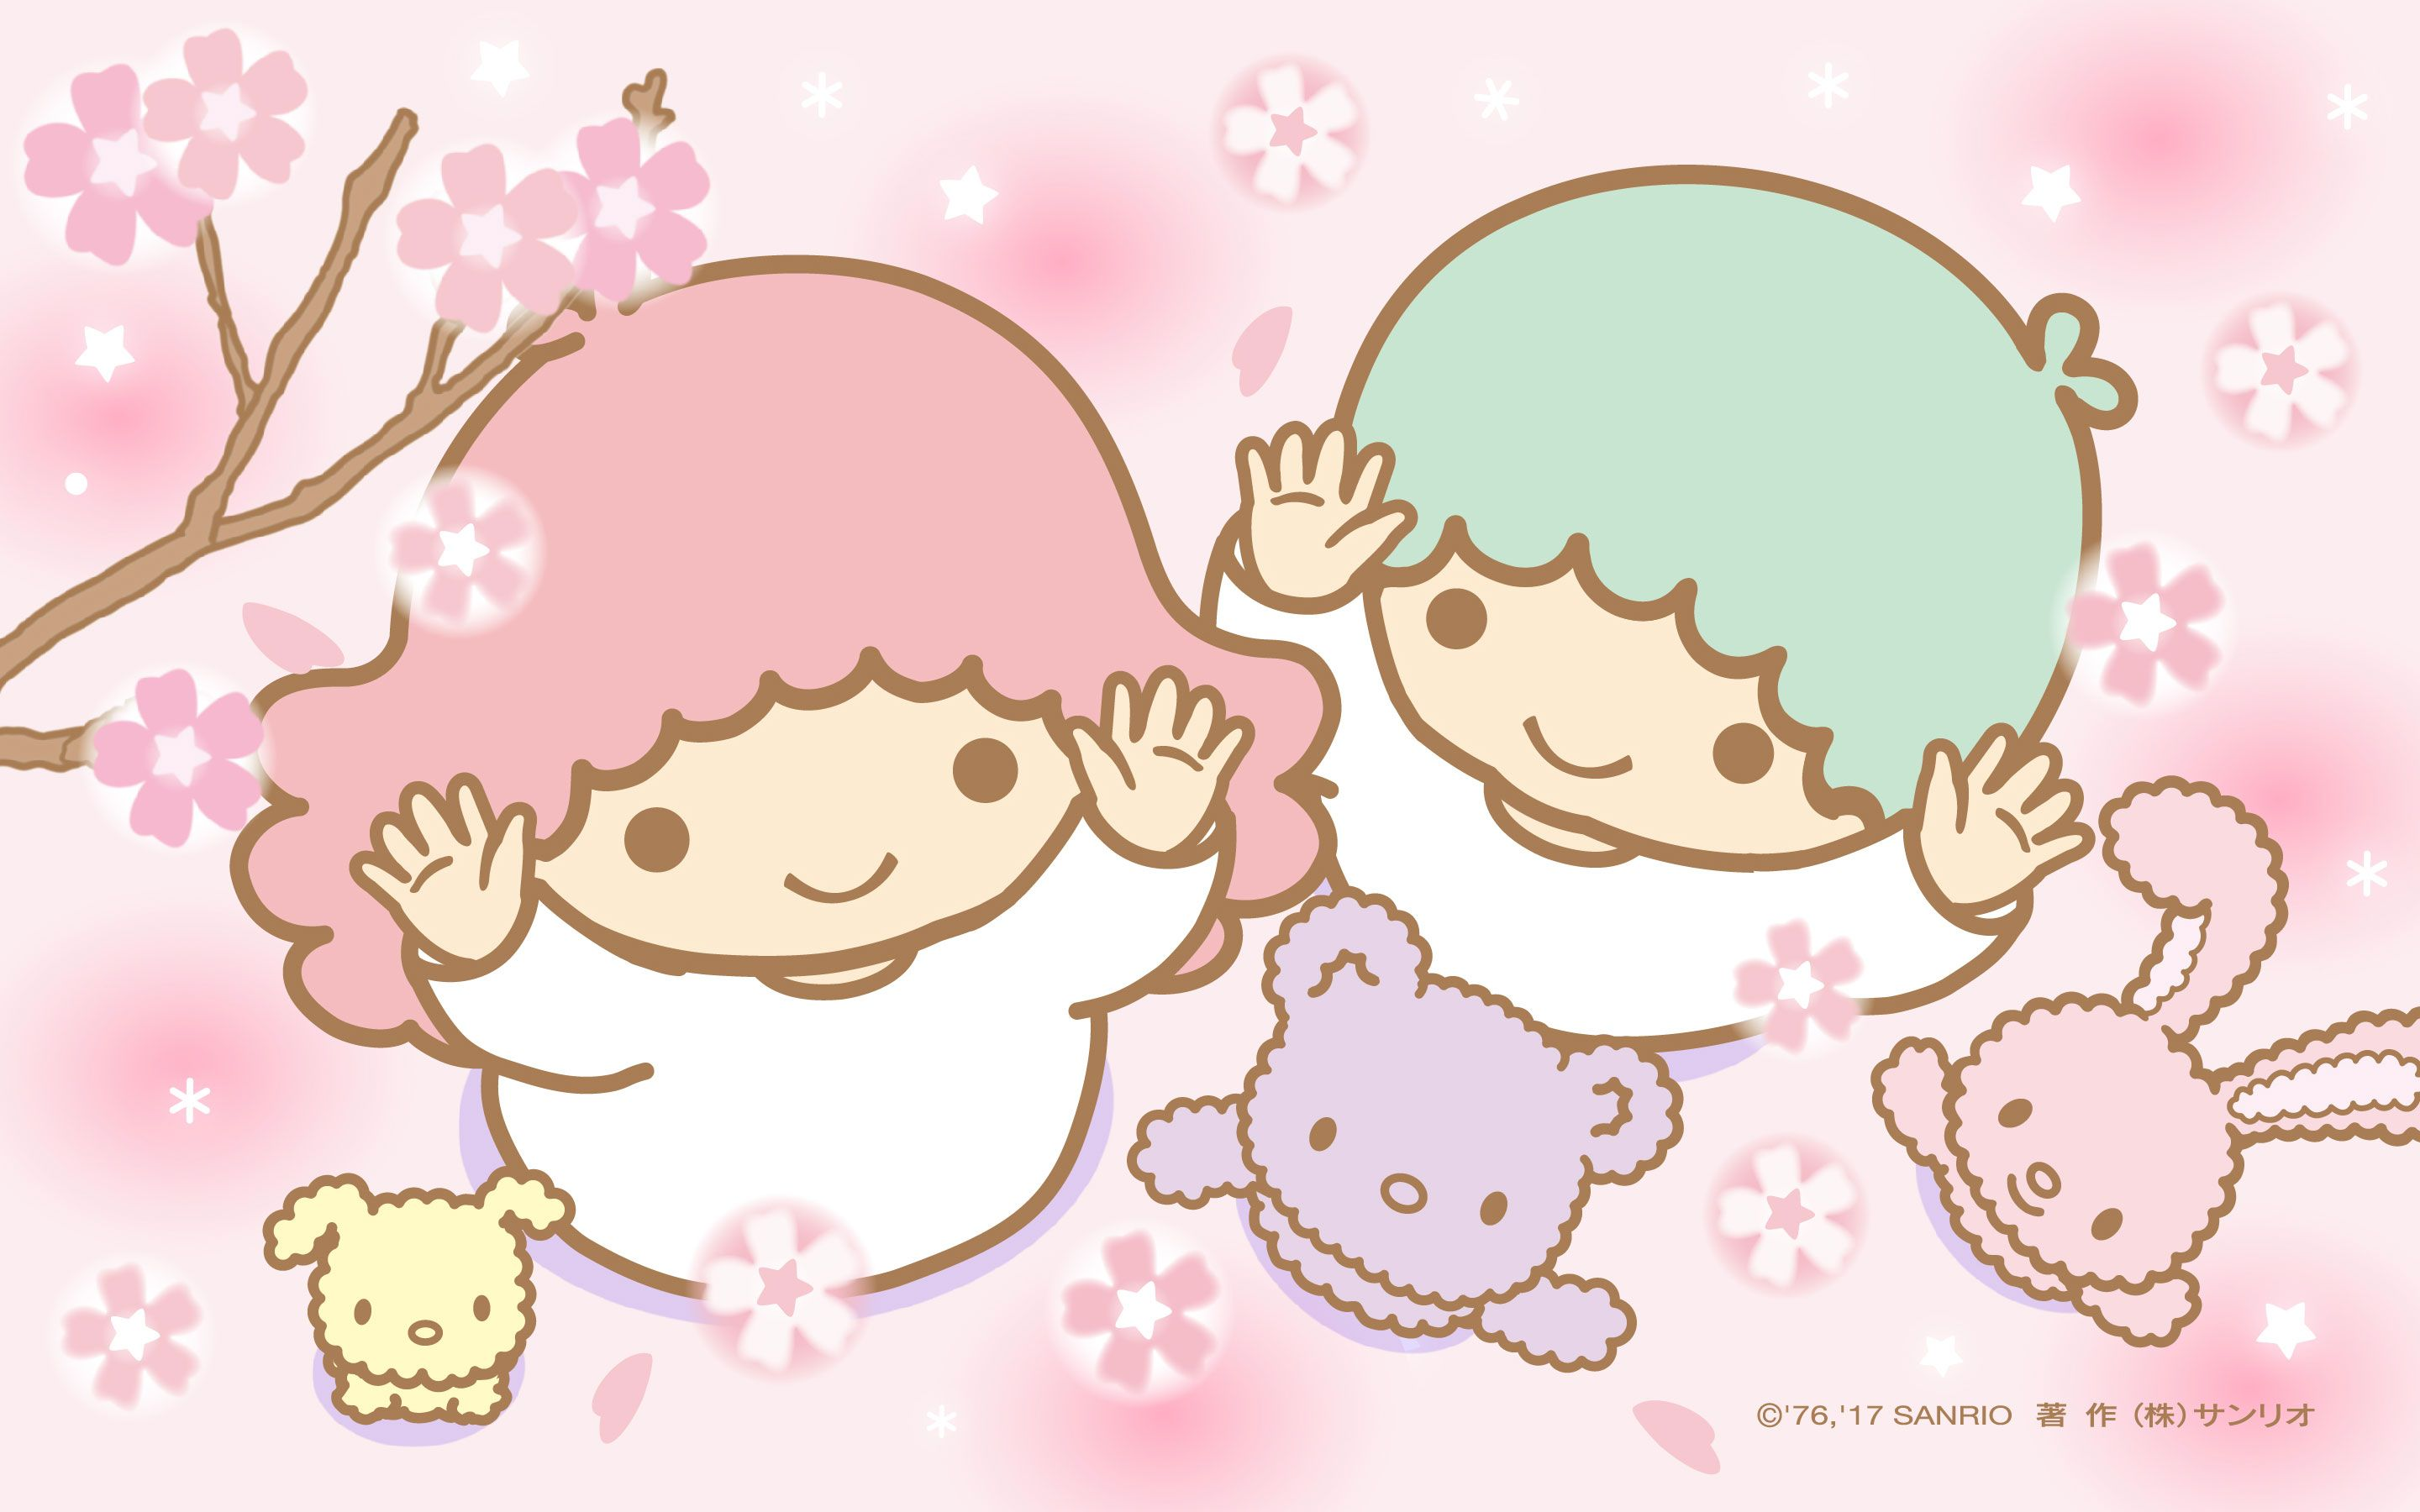 Cute Twins Baby Hd Wallpaper 【android Iphone Pc】little Twin Stars Wallpaper 201703 三月桌布